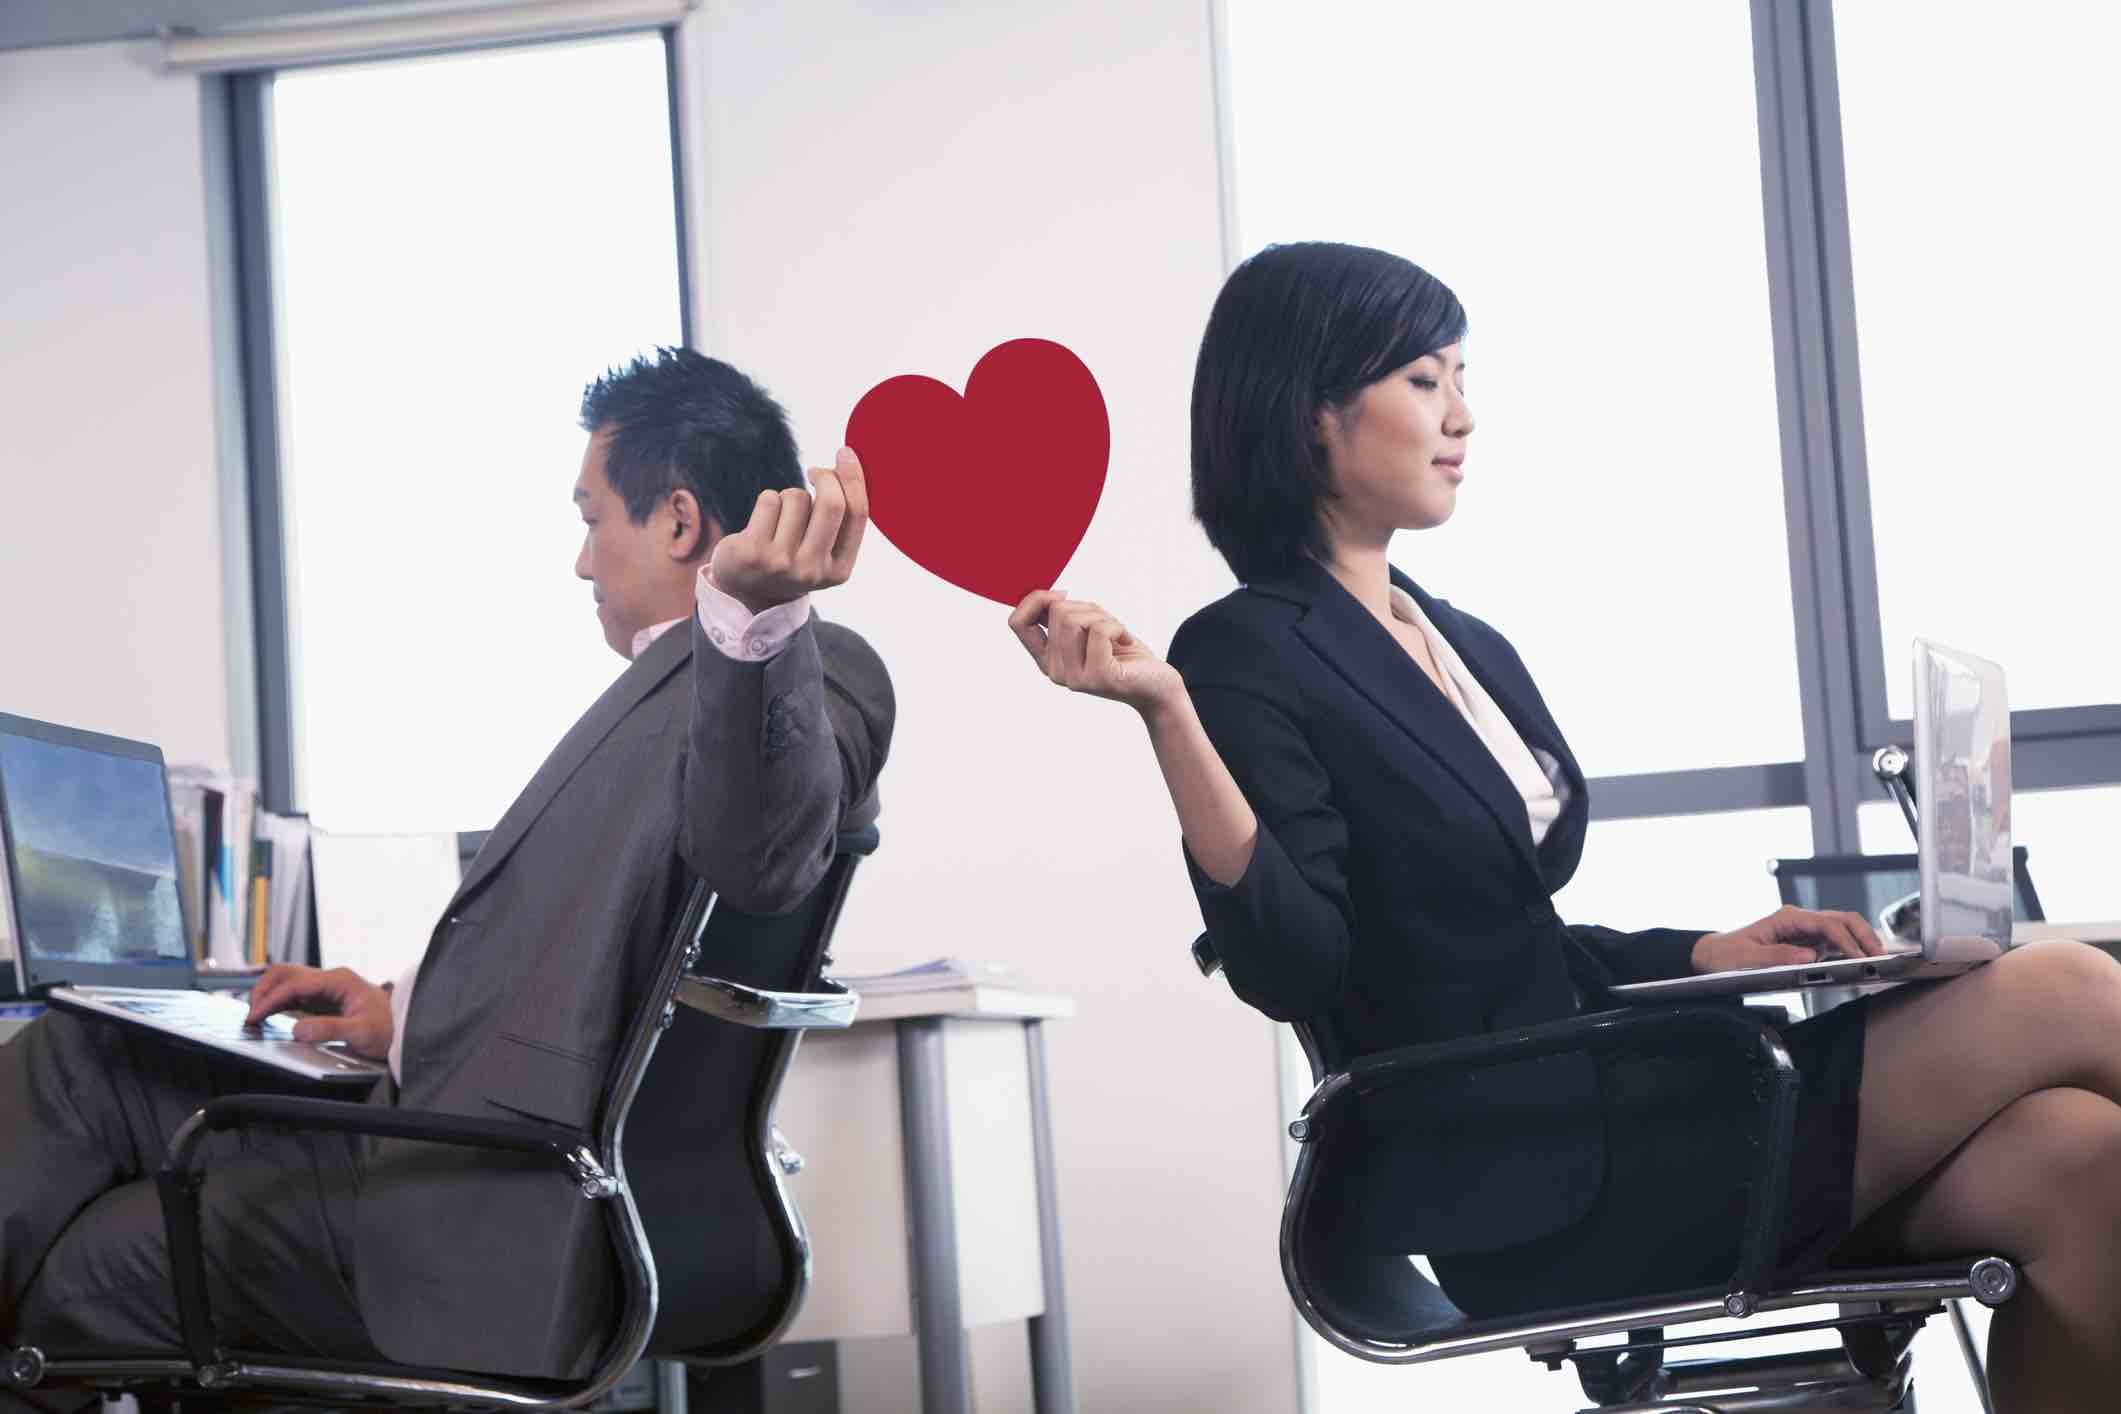 Q&A: How Do I Handle A Workplace Infatuation?